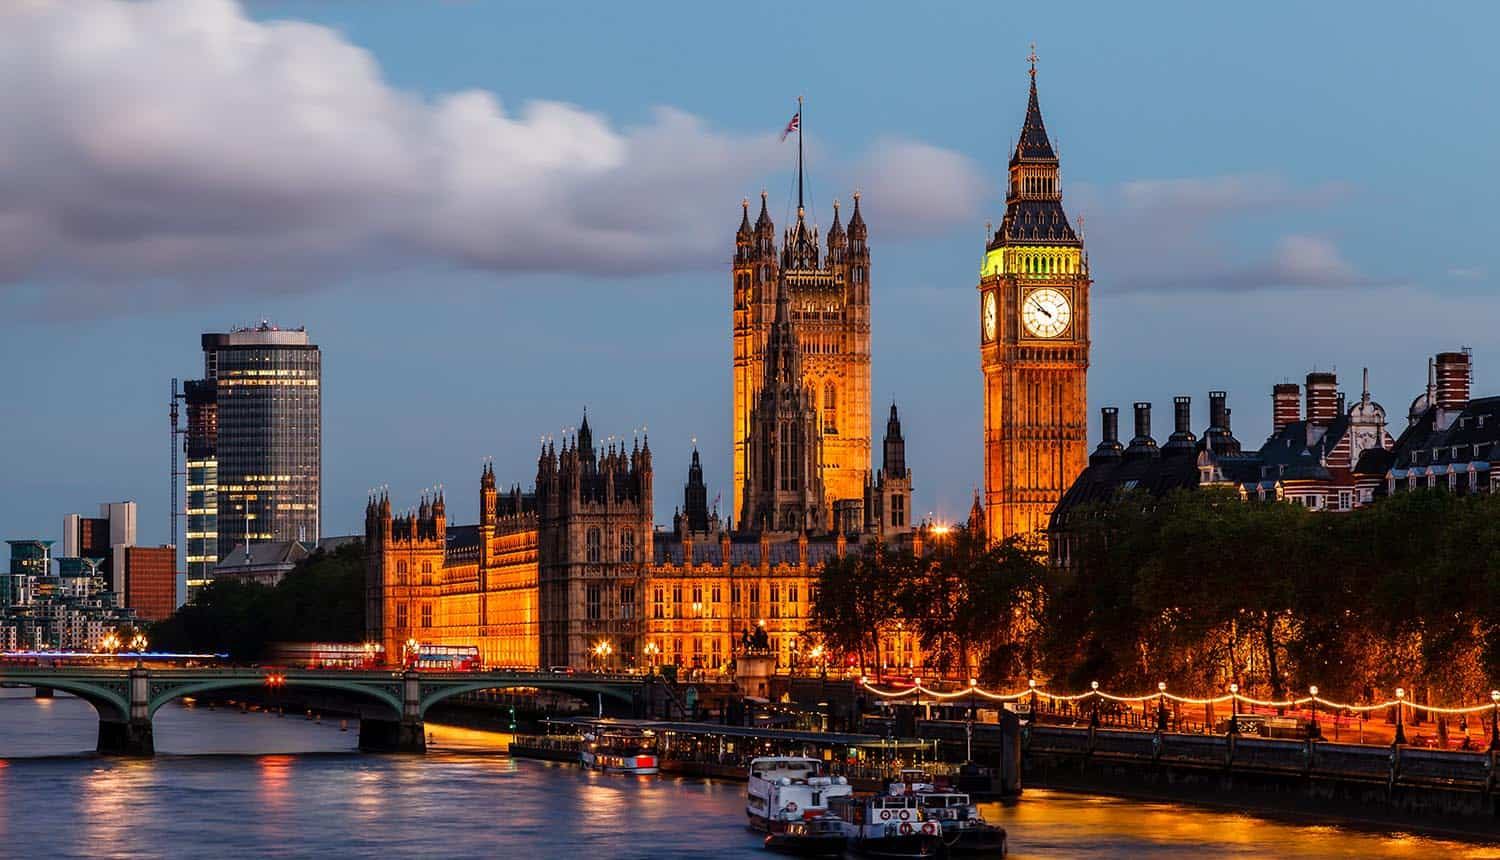 Big Ben and Westminster Bridge in the evening showing fraud considered national security threat in UK